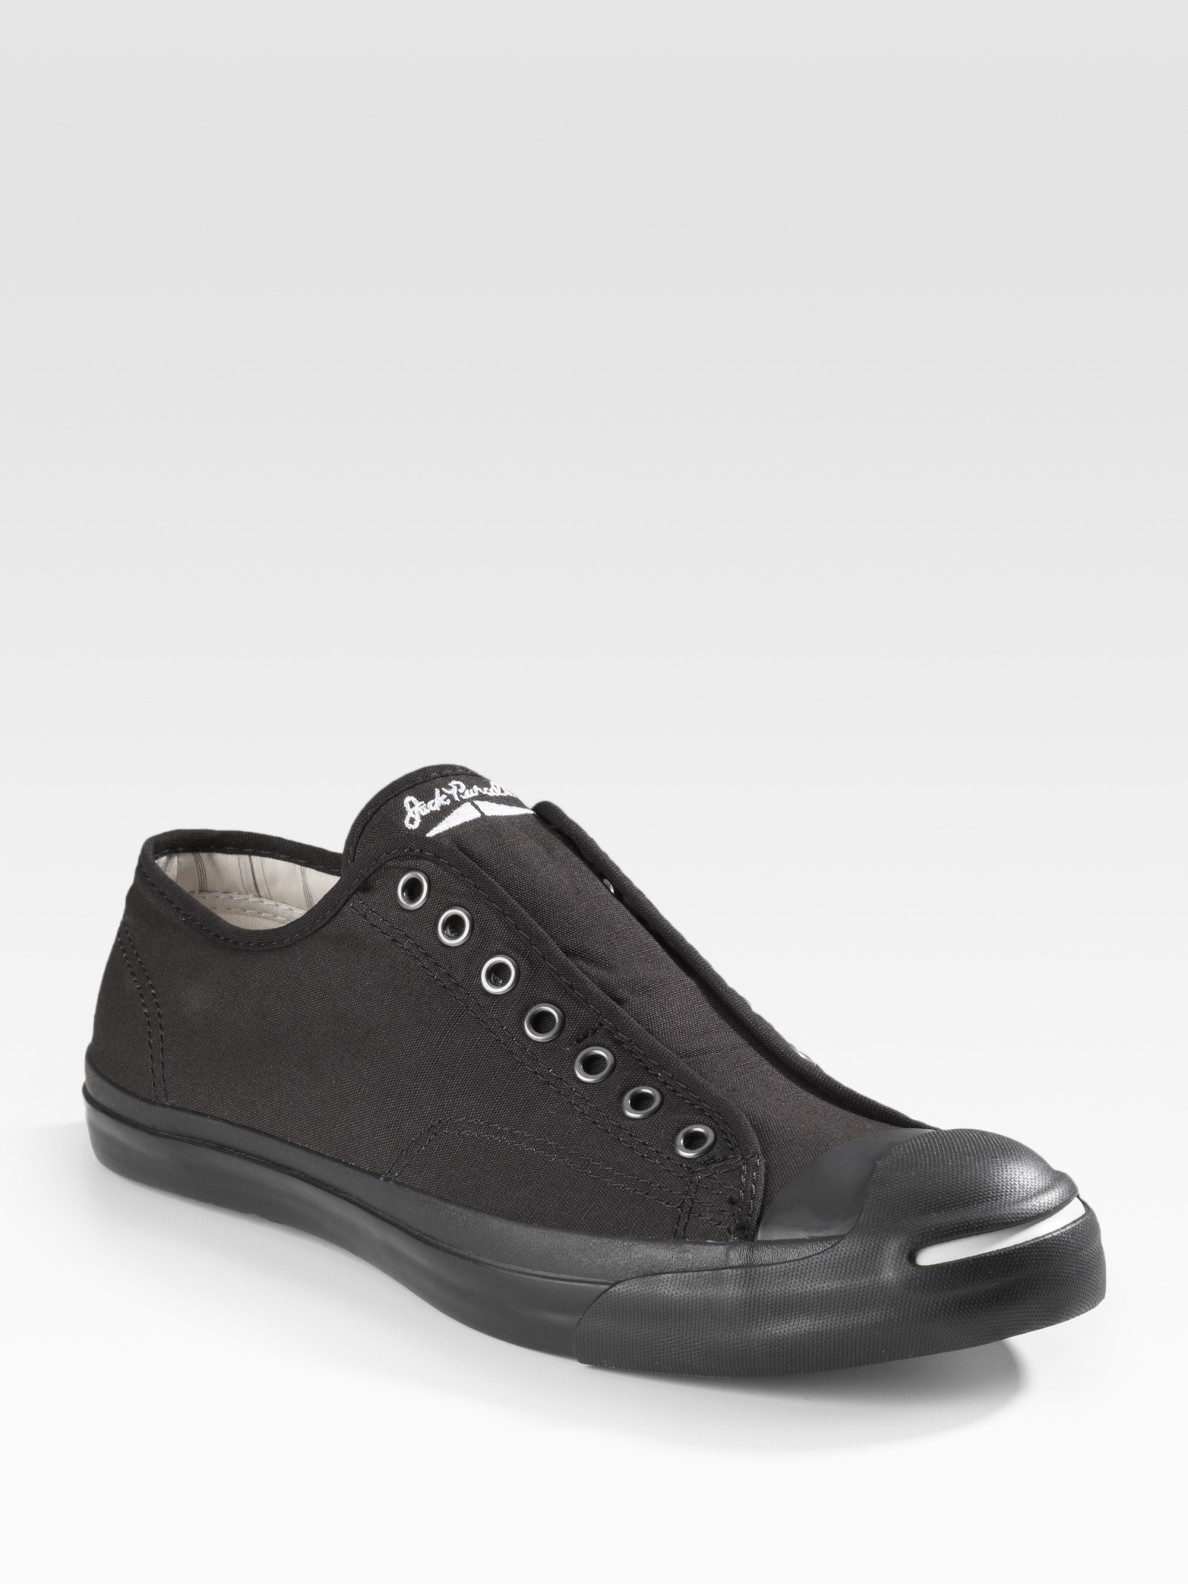 ab11cb22afdf Lyst - Converse Jack Purcell Slip On in Black for Men